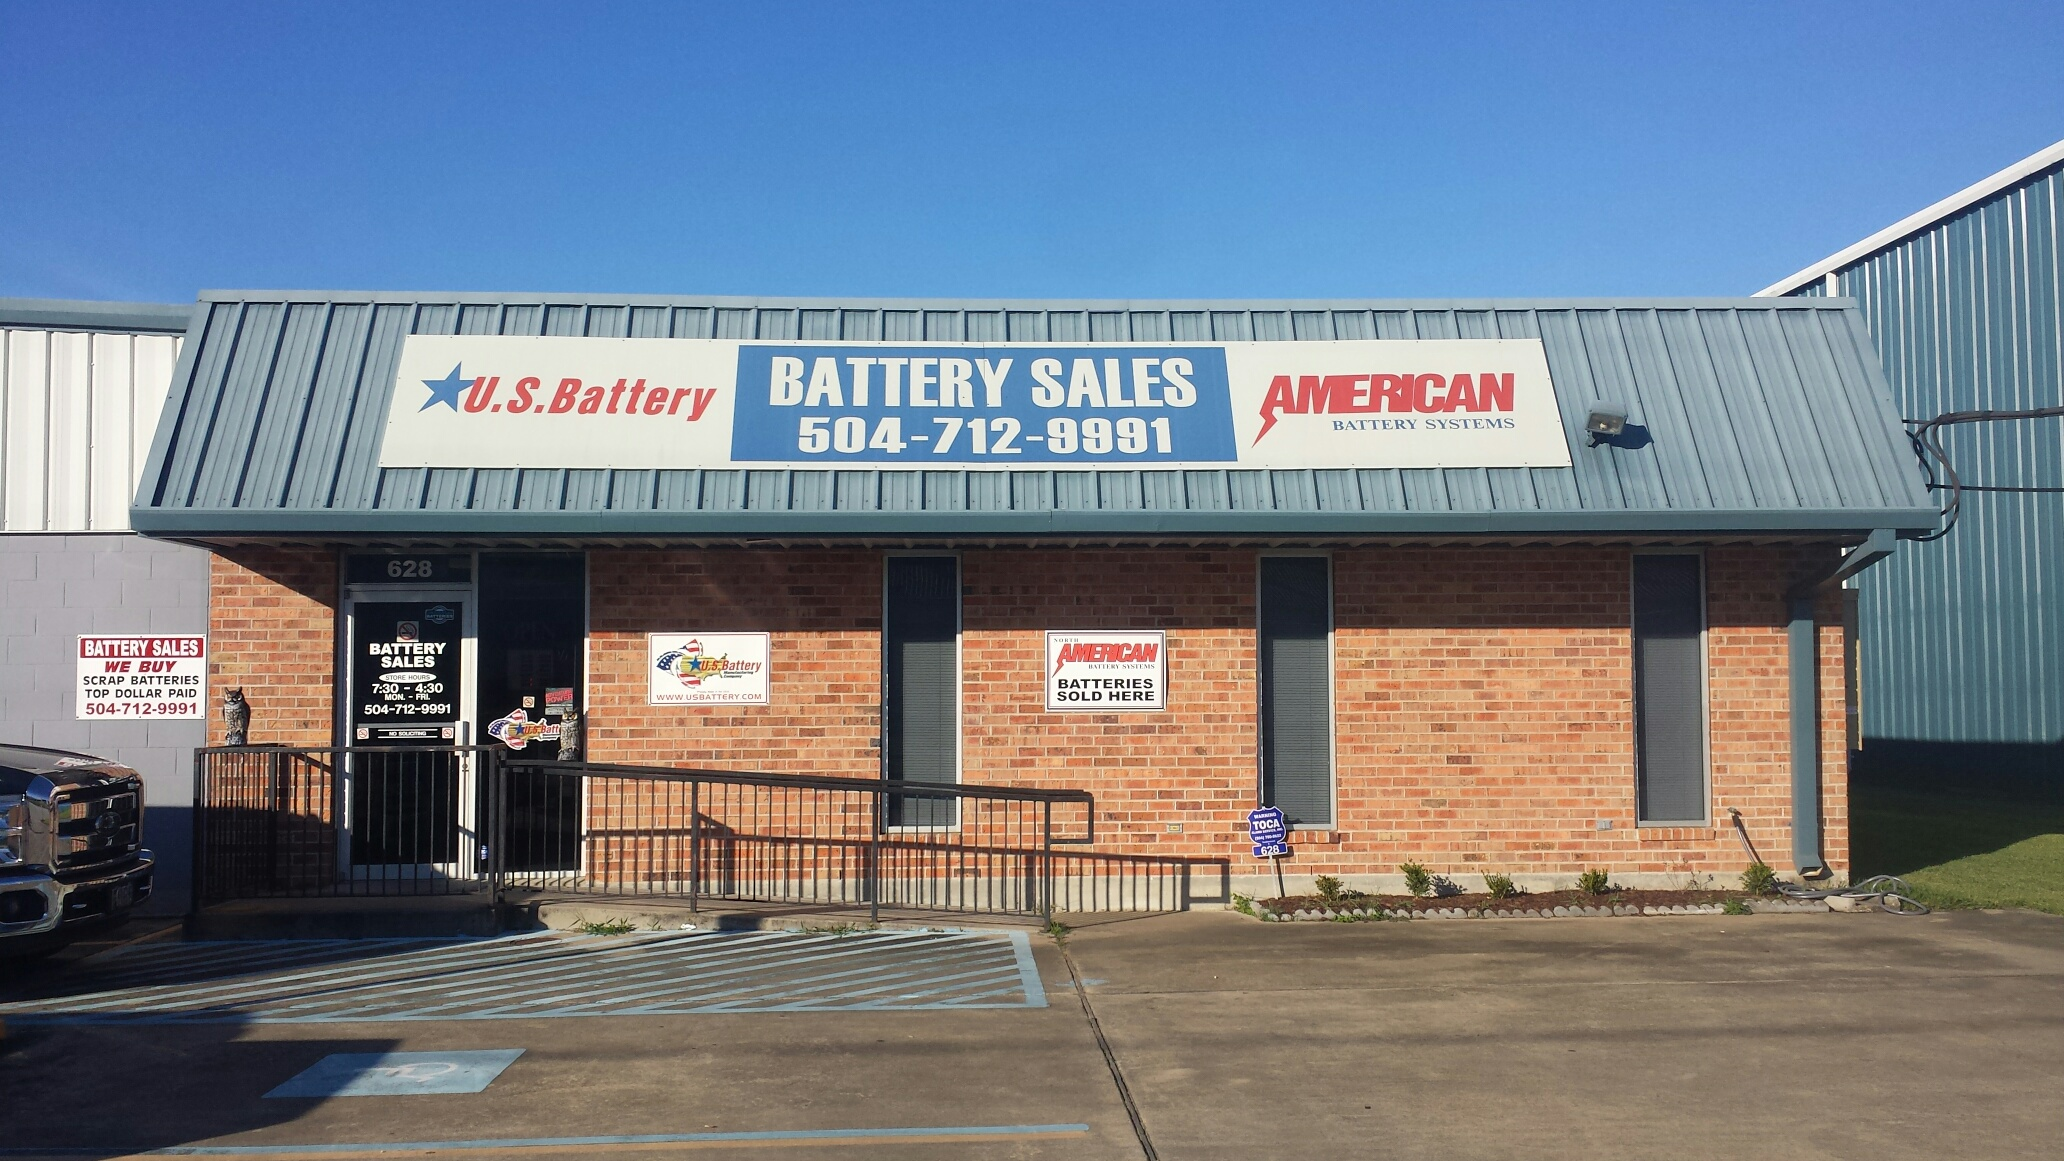 Battery Sales & Service - Battery Store - New Orleans image 0